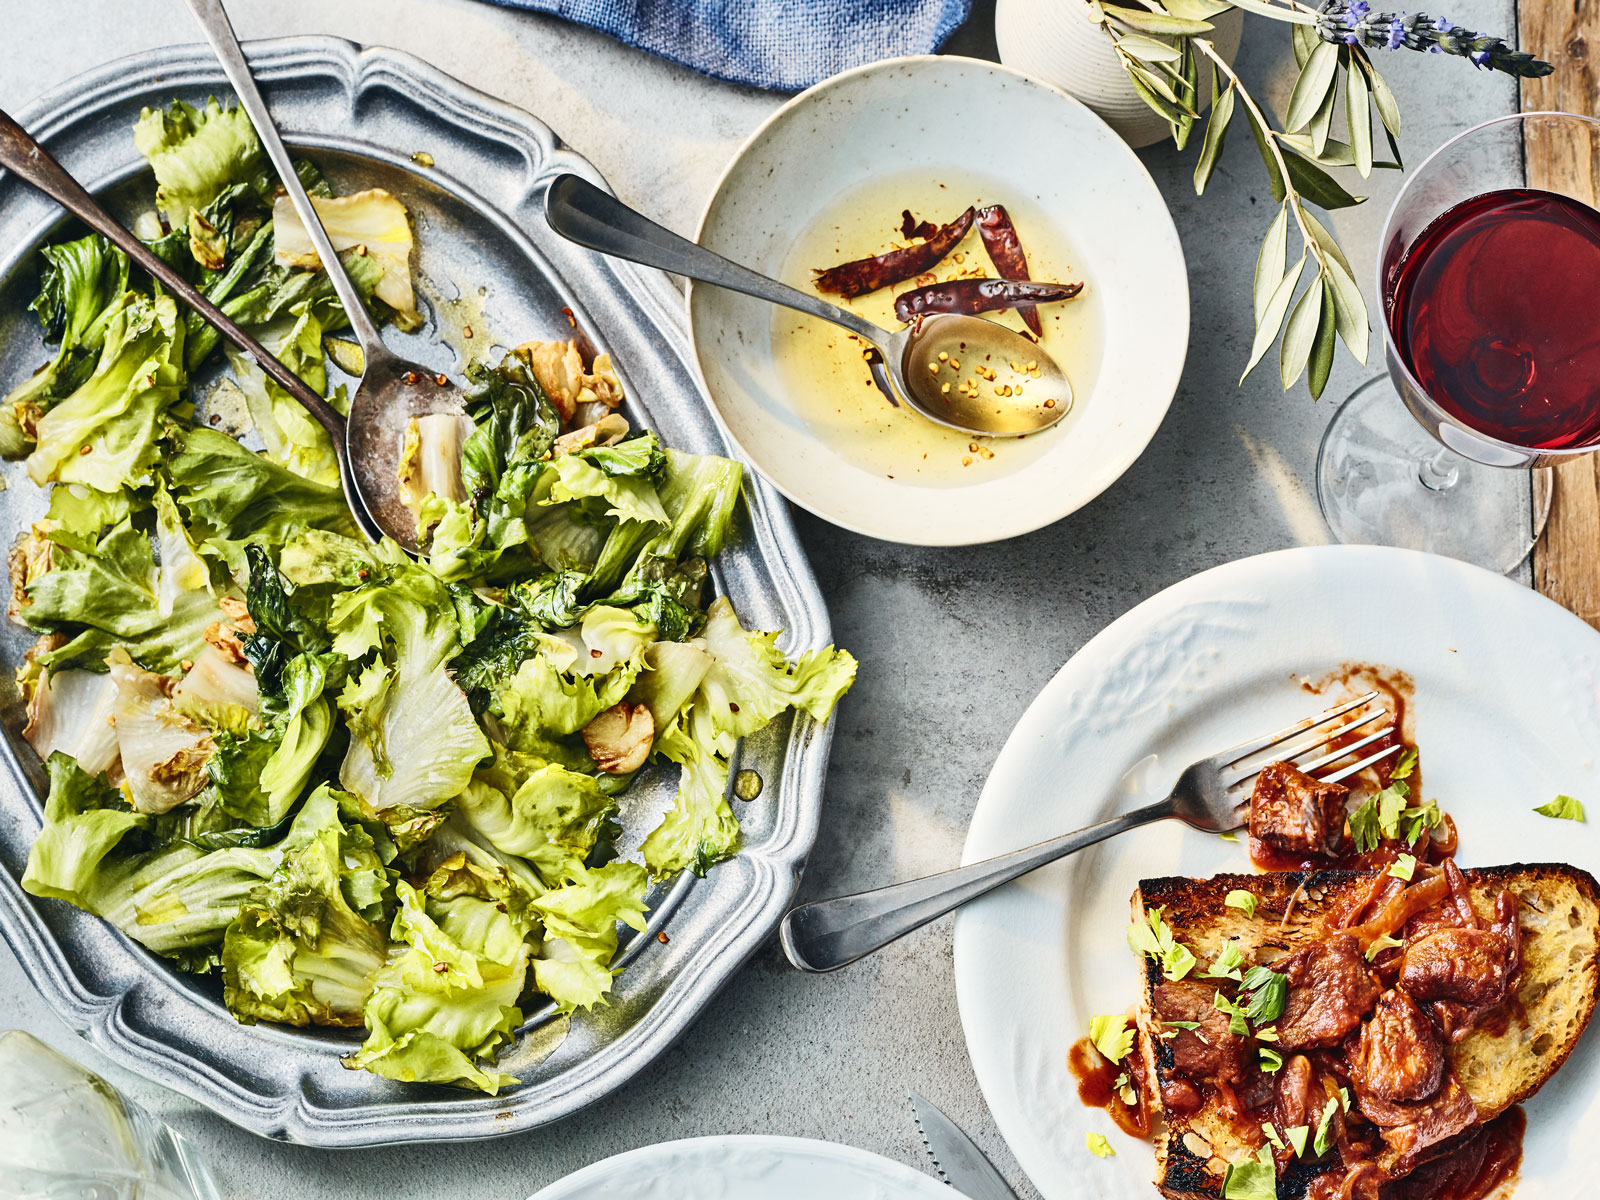 Sauteed Chicories with Chile Oil